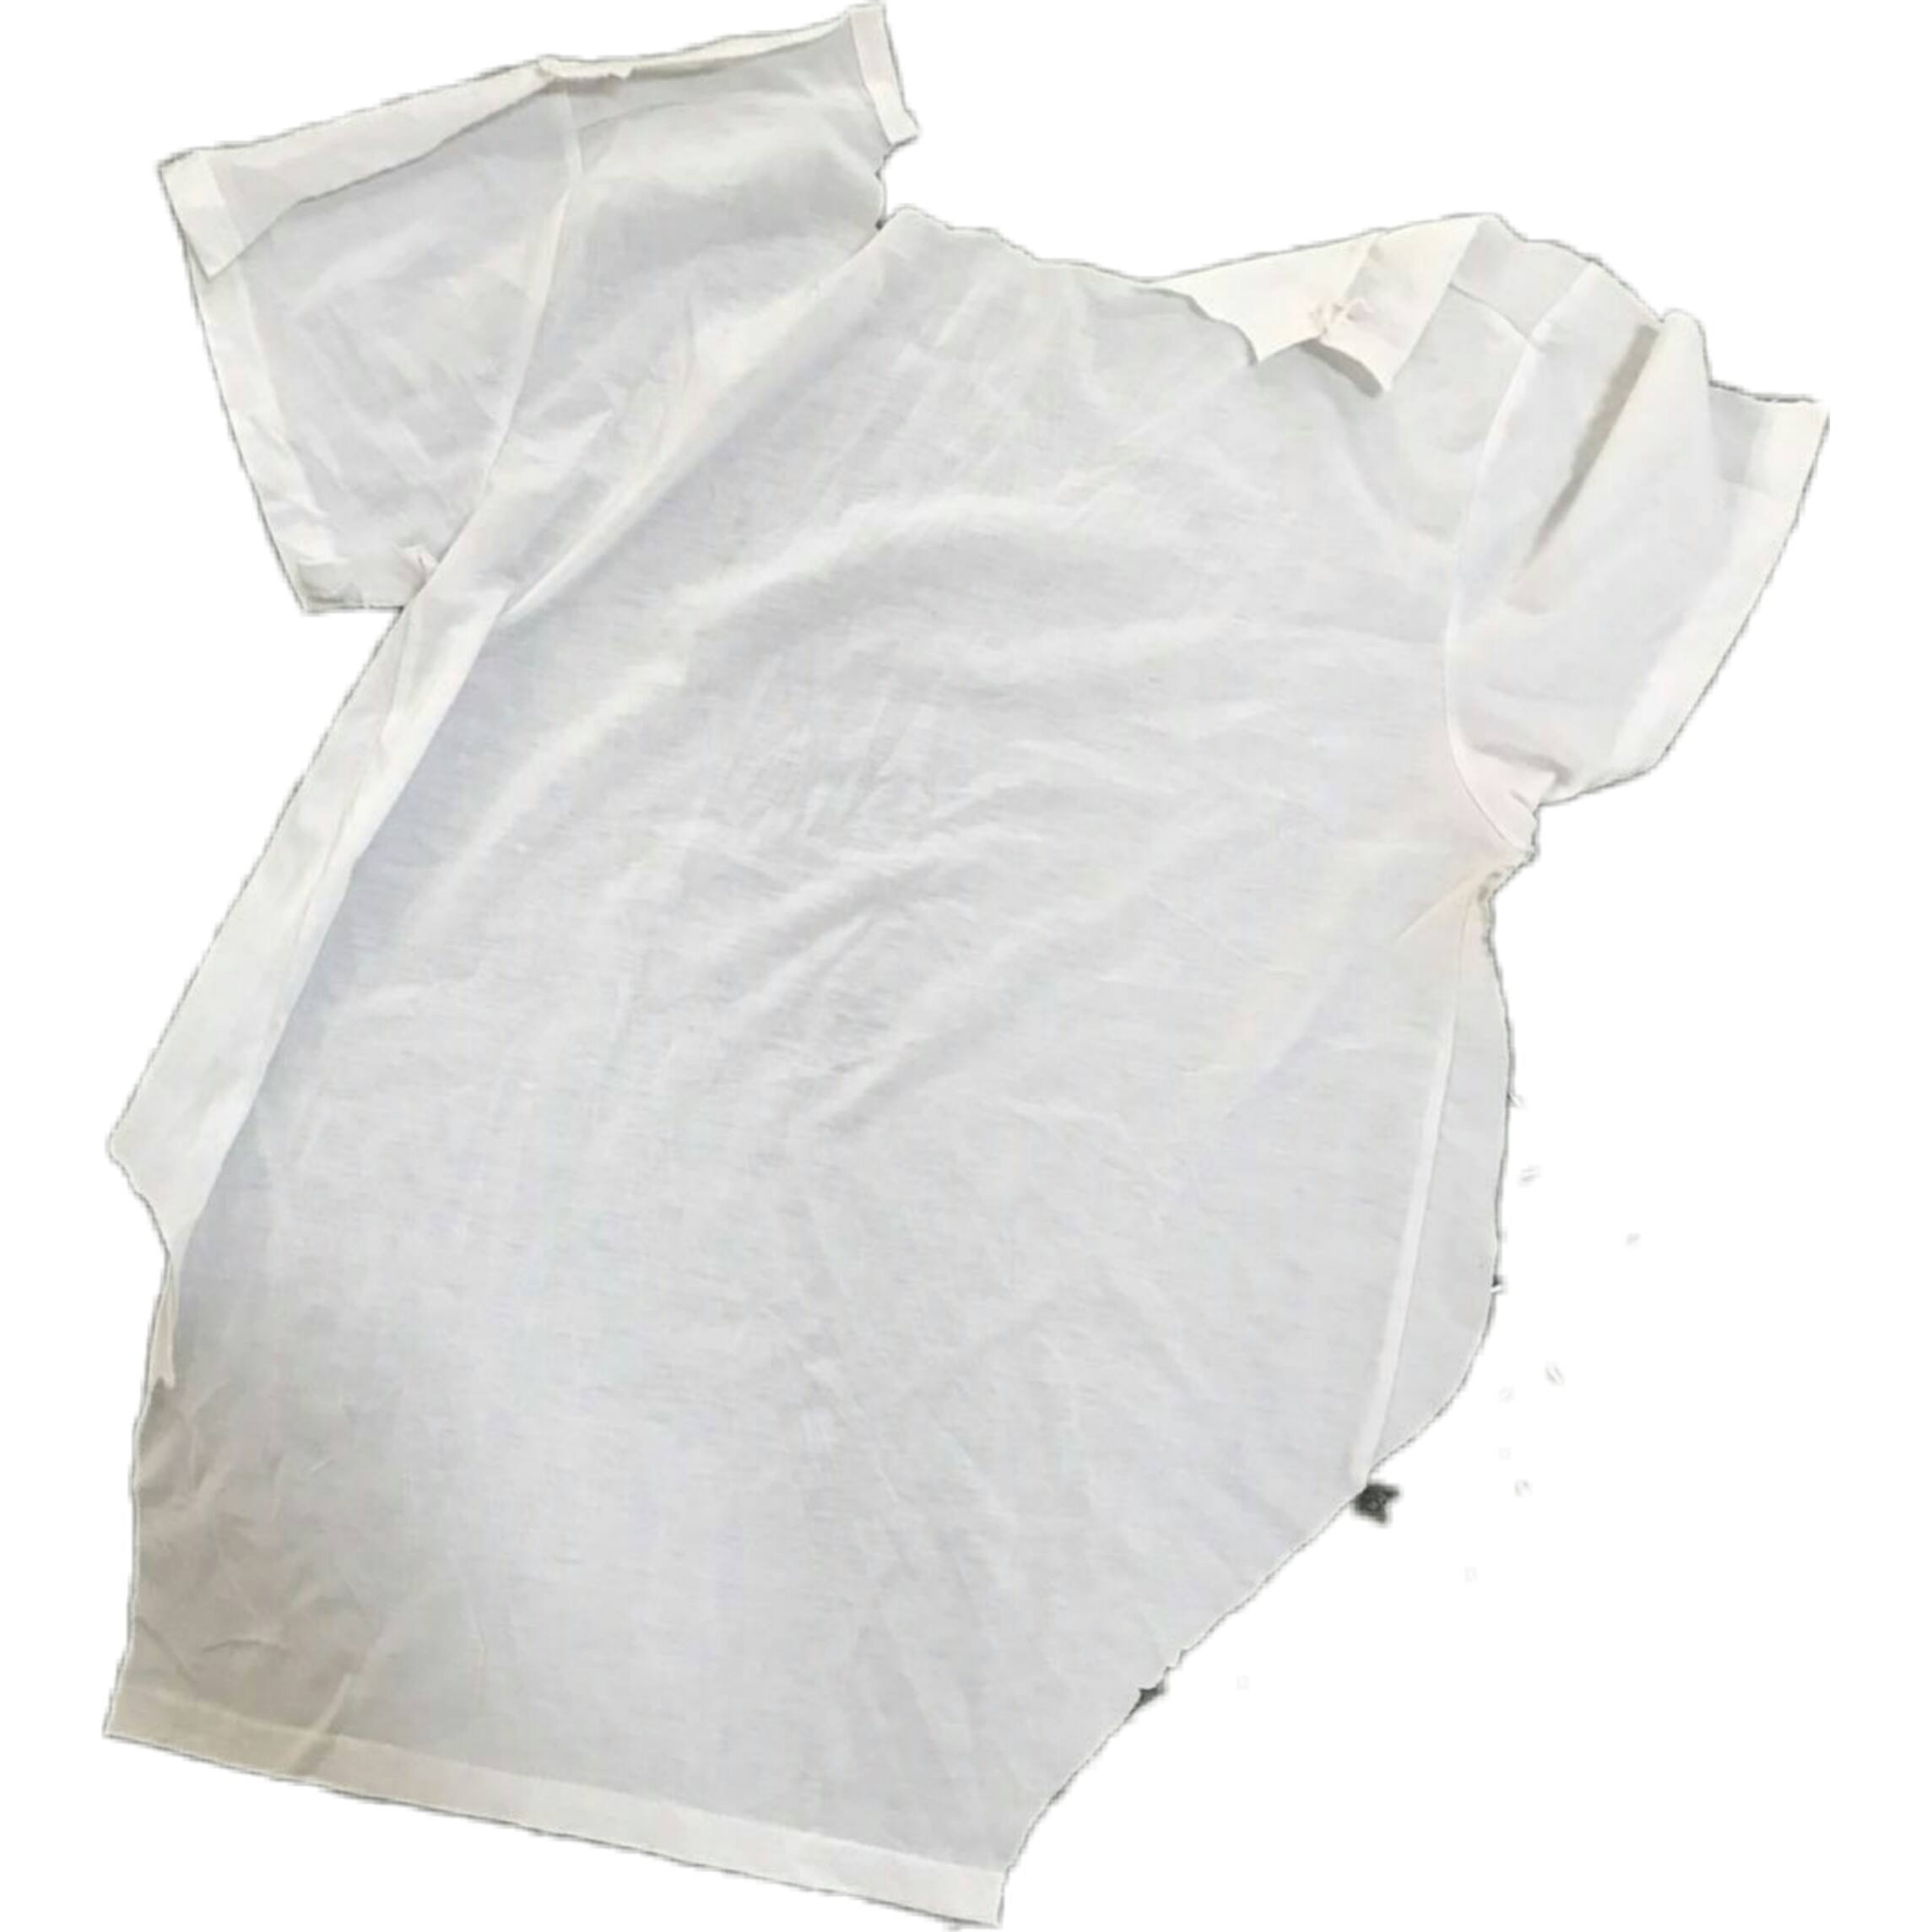 100 pieces of white cotton T-shirt rags are suitable for industrial cleaning and have good oil and water absorption capacity